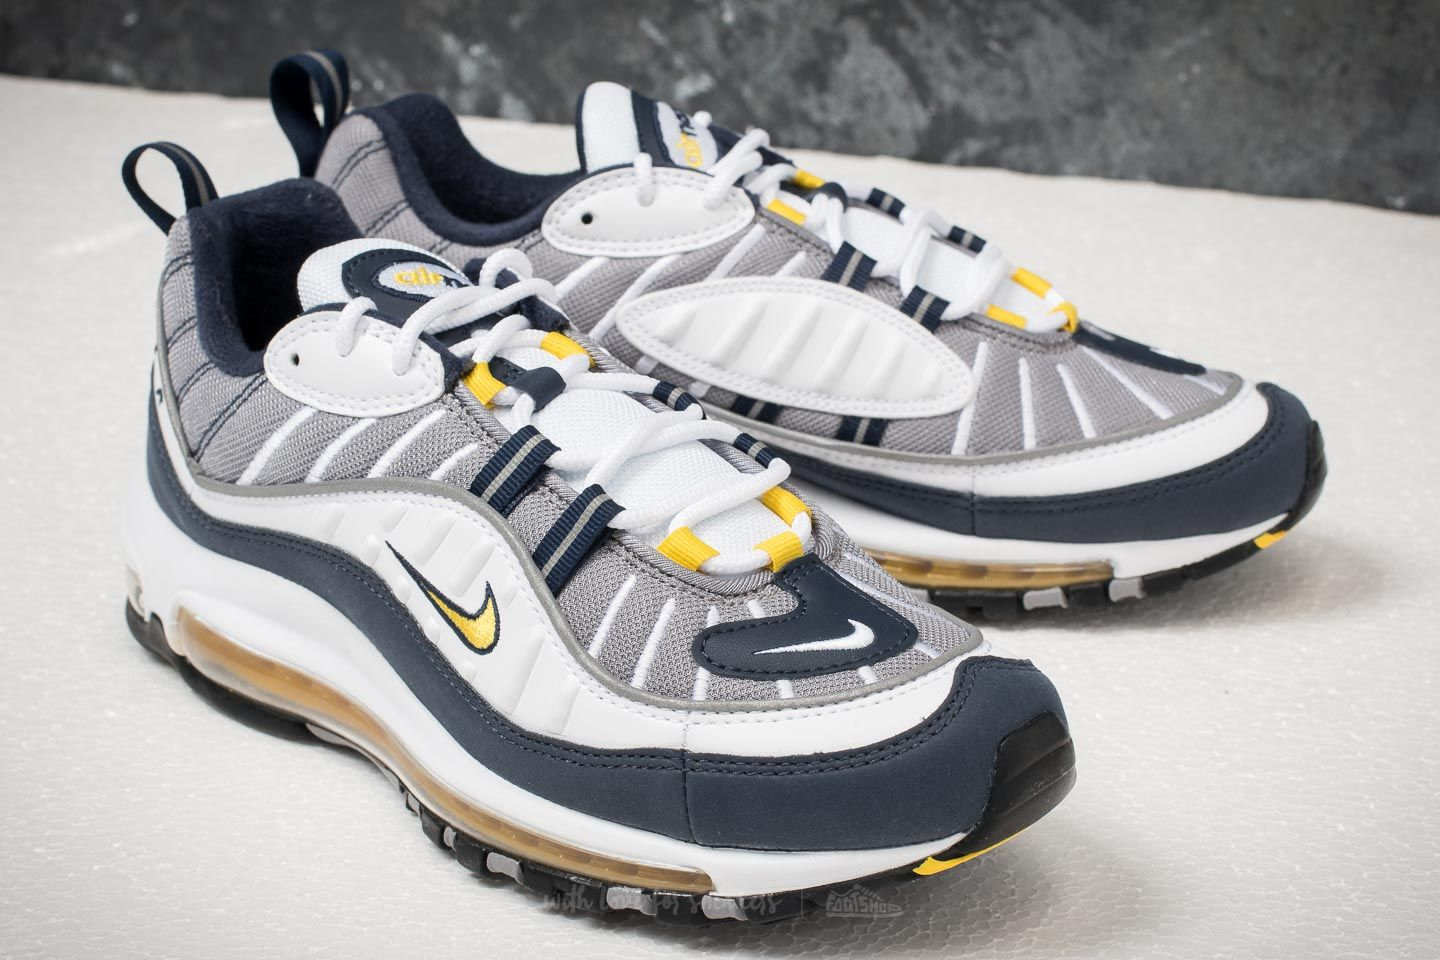 pretty cool catch authorized site nike air max 98